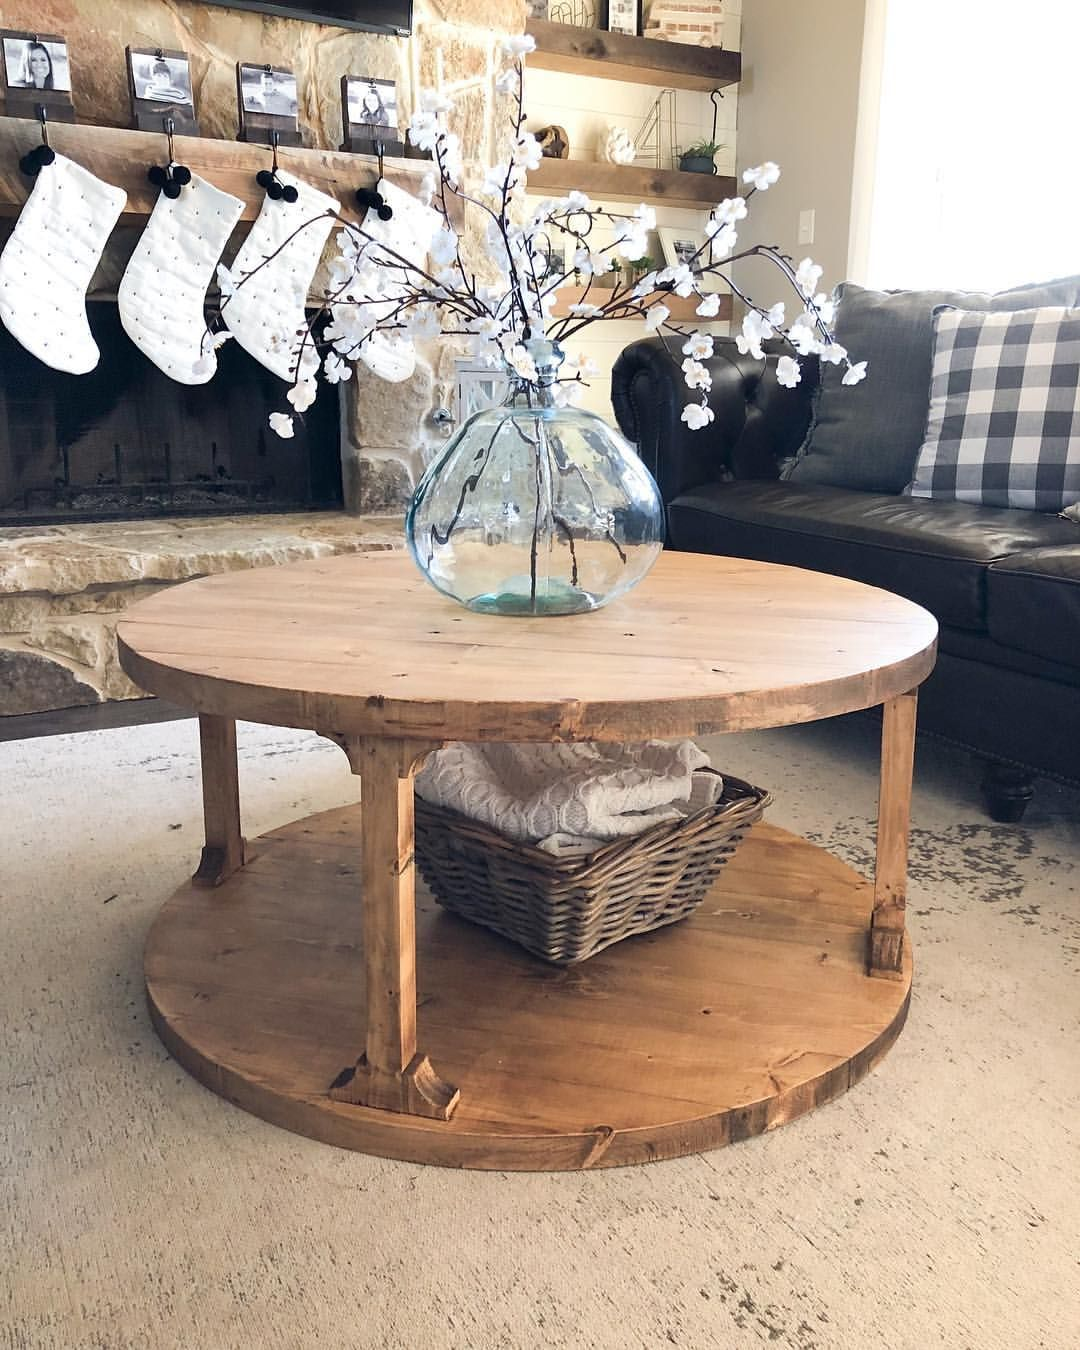 7 2x6 Boards Is All You Need To Build This 39 Round Coffee Table Free Plans And Coffee Table Farmhouse Round Coffee Table Living Room Diy Coffee Table Plans #round #side #table #for #living #room